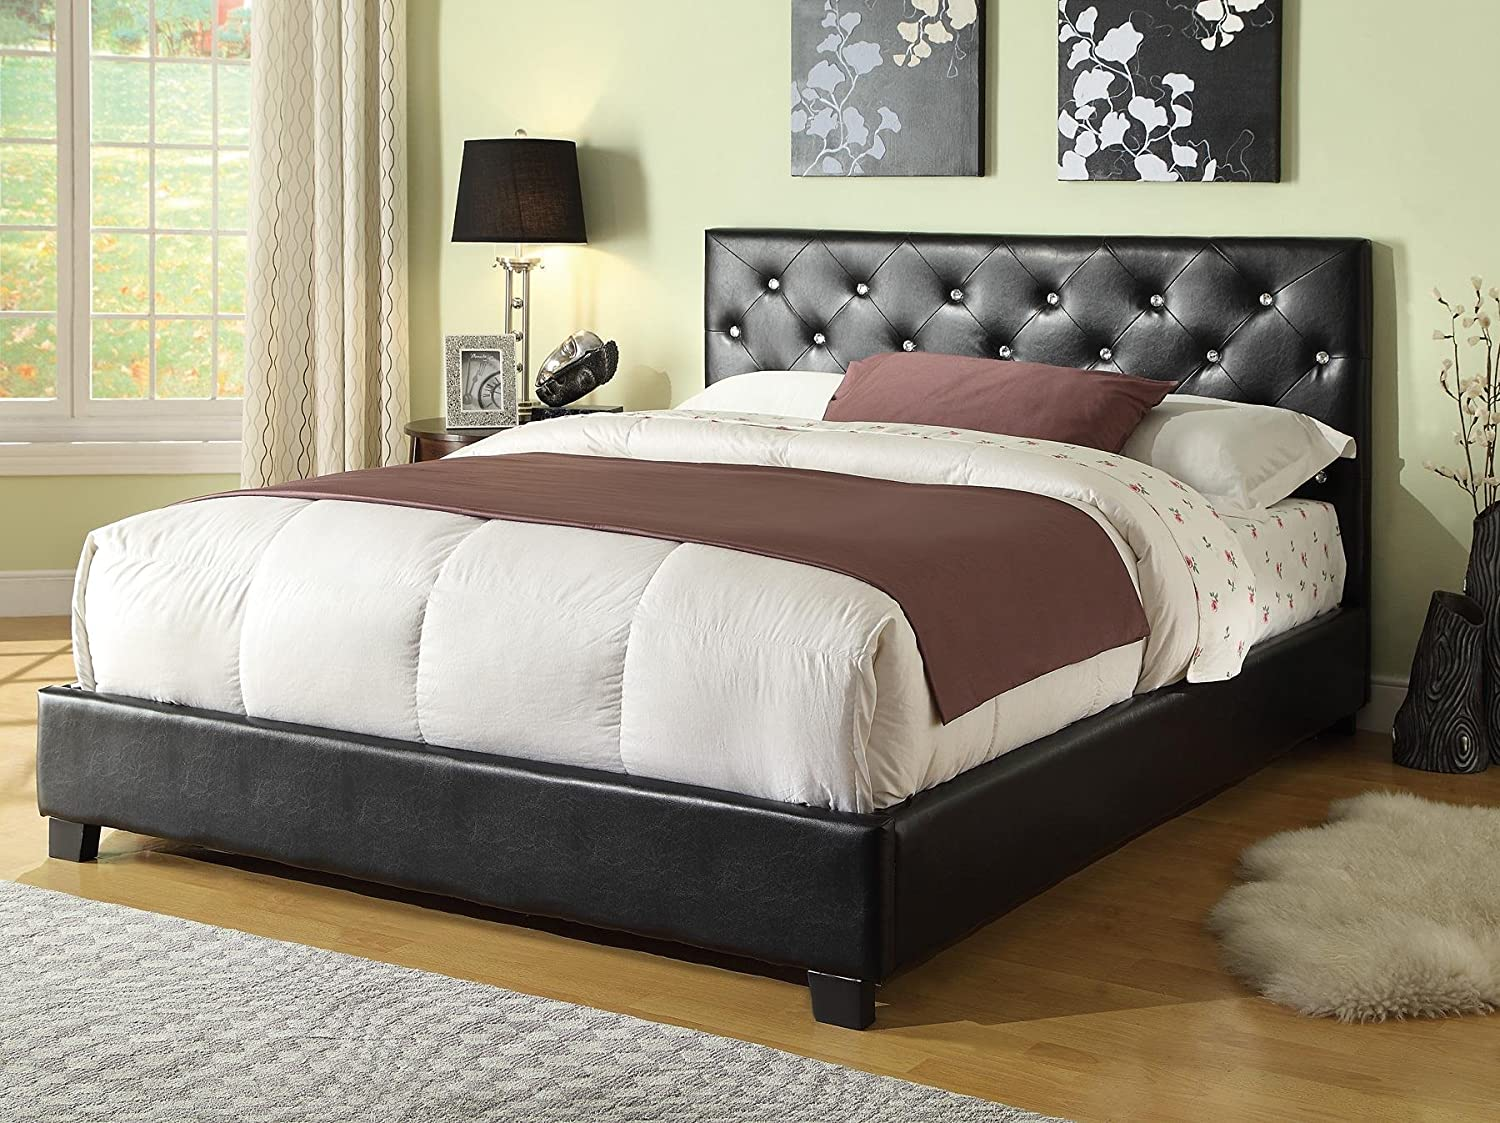 Amazon com coaster home furnishings coaster queen bed headboard footboard black kitchen dining